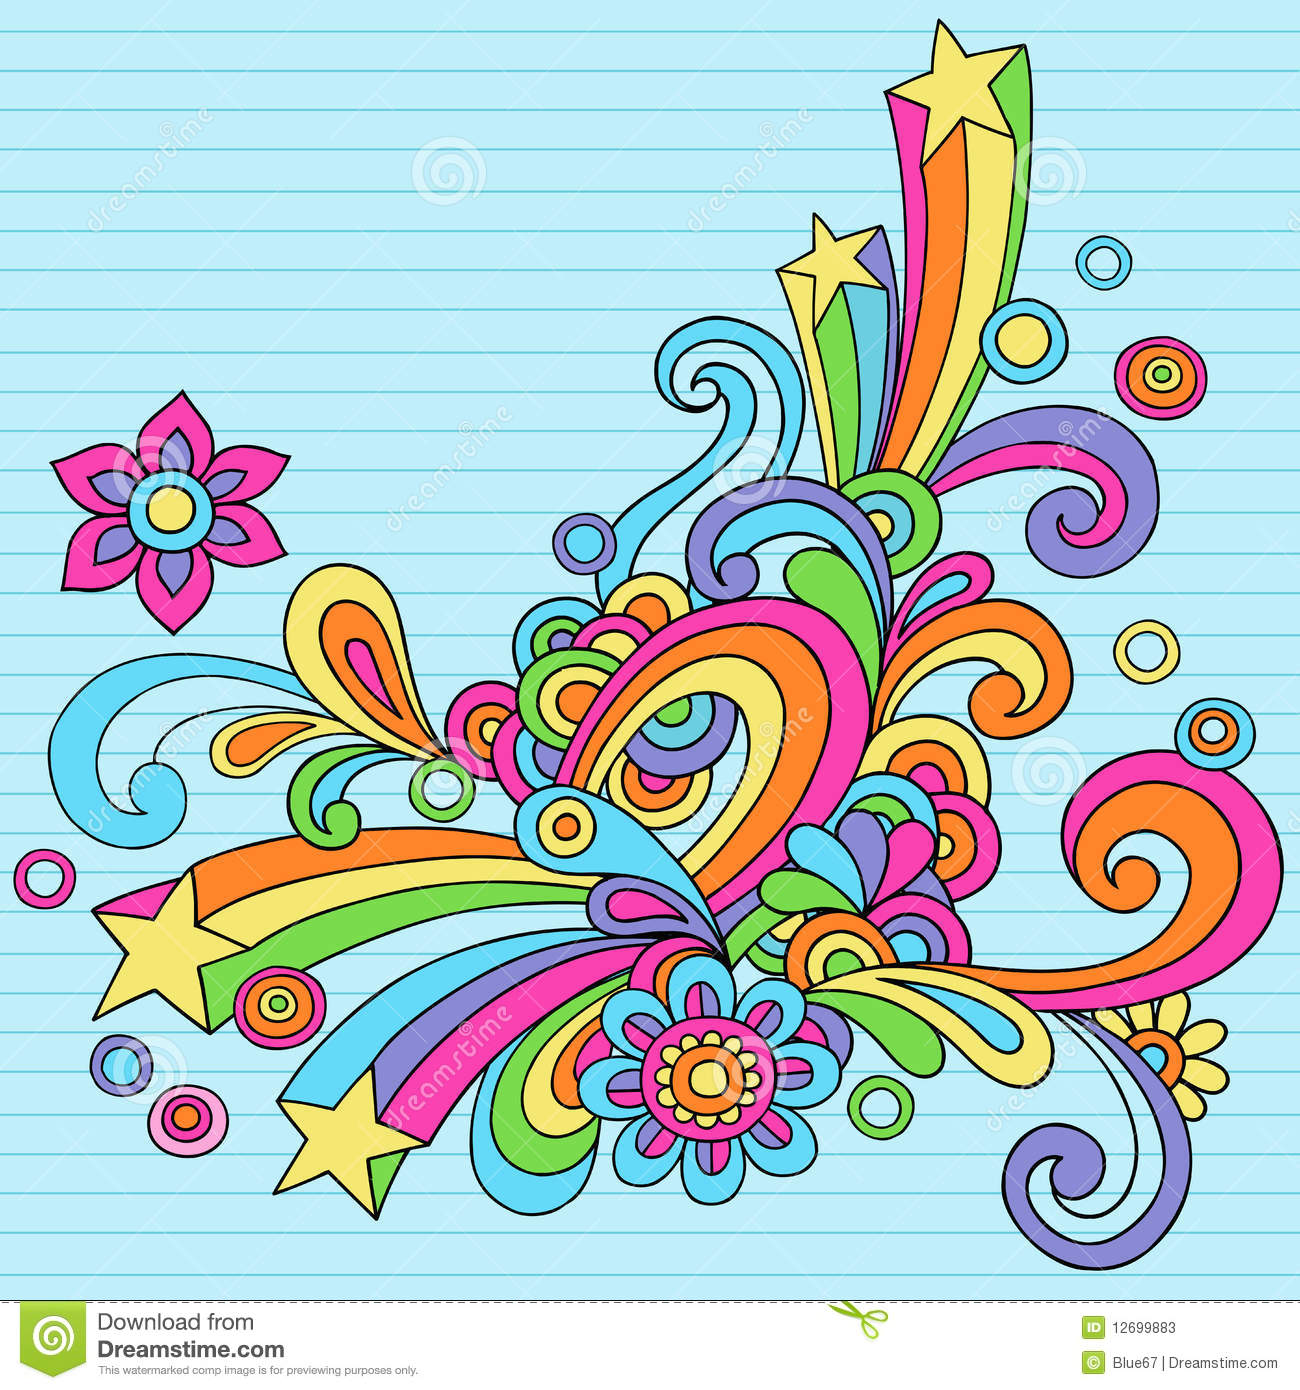 ... groovy flowers clip art viewing 19 images for groovy flowers clip art